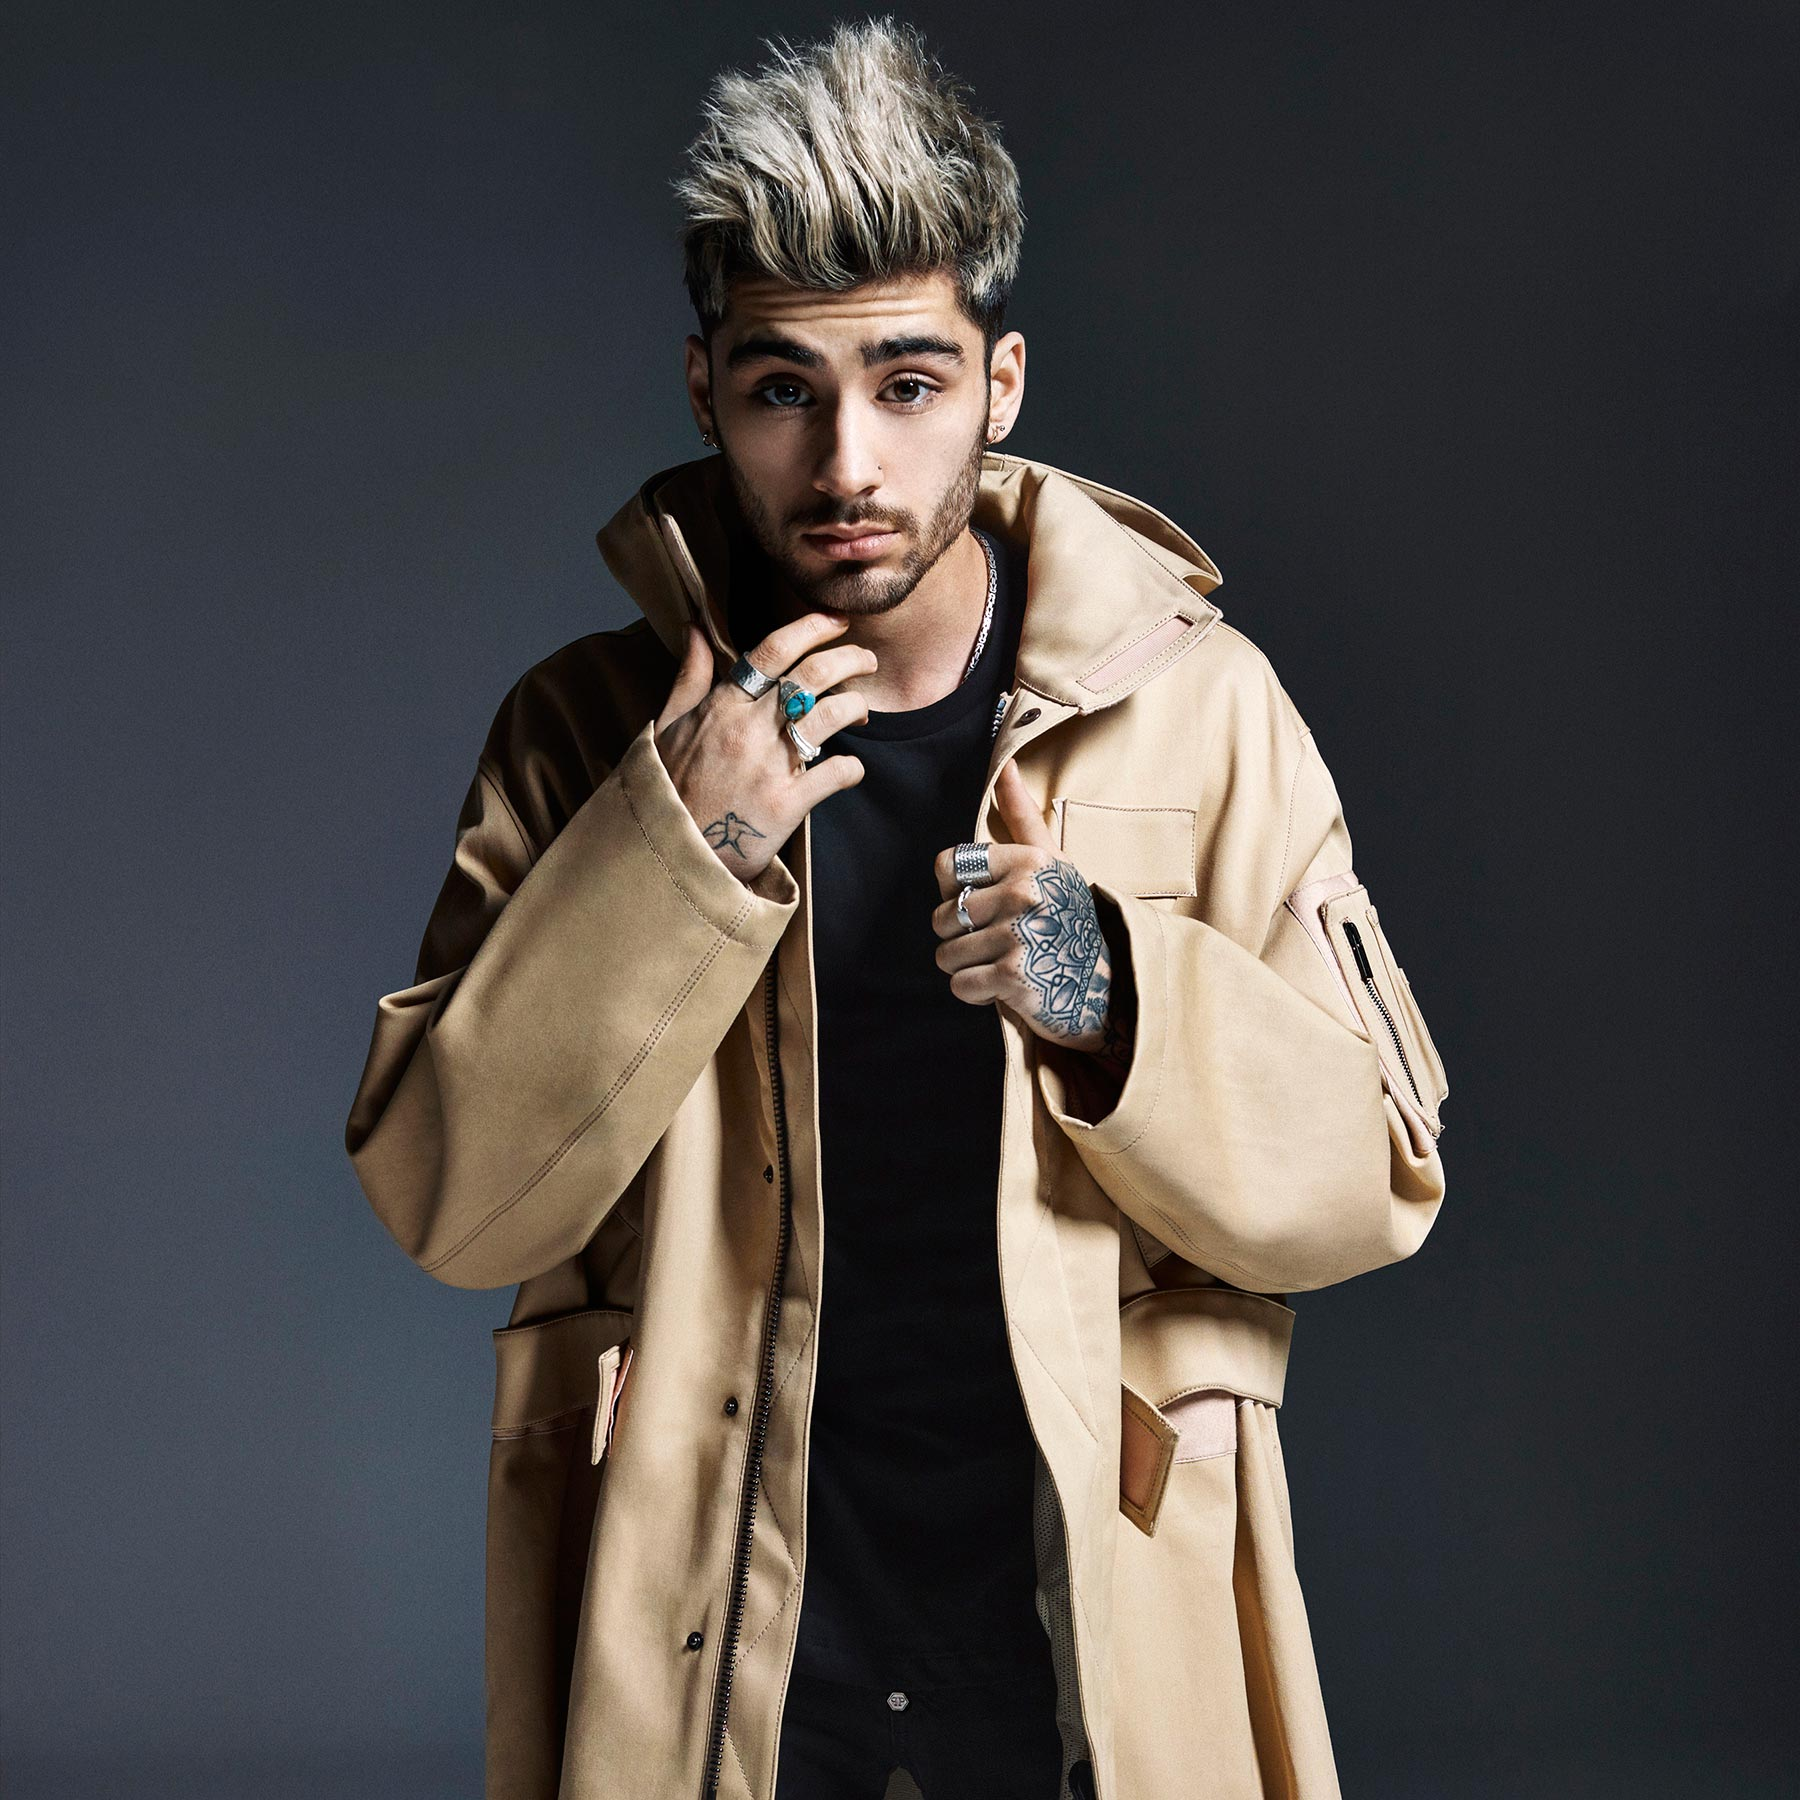 ZAYN MALIK PR Photo 2017 CR: Miller Mobley